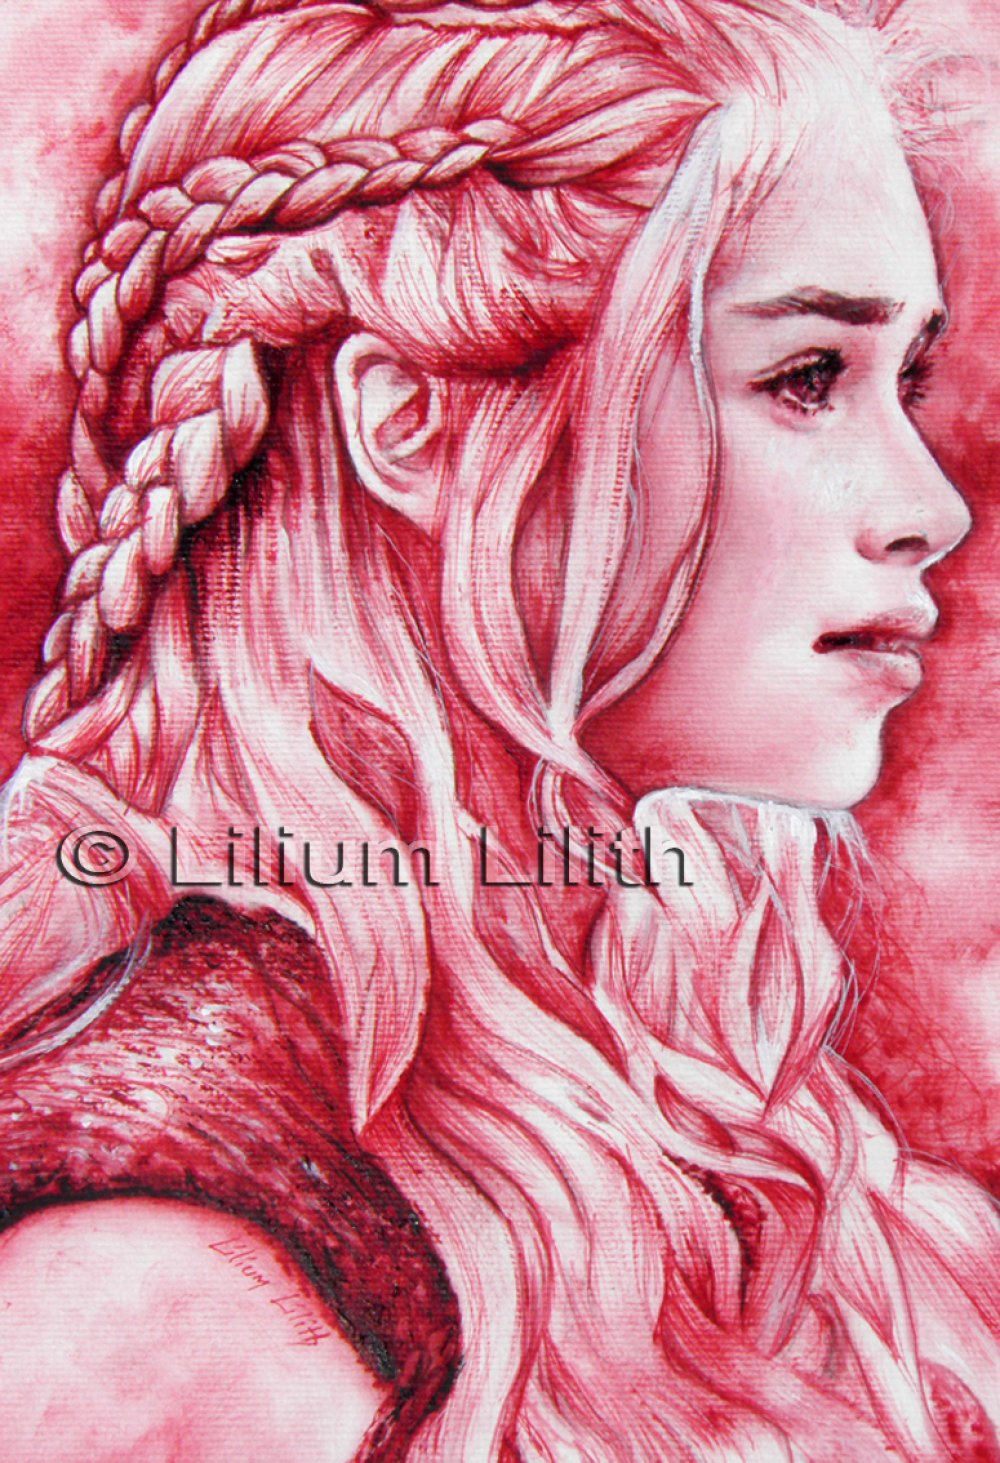 Toile, Daenerys Targaryen, Game of Thrones , 30 X 20 cm